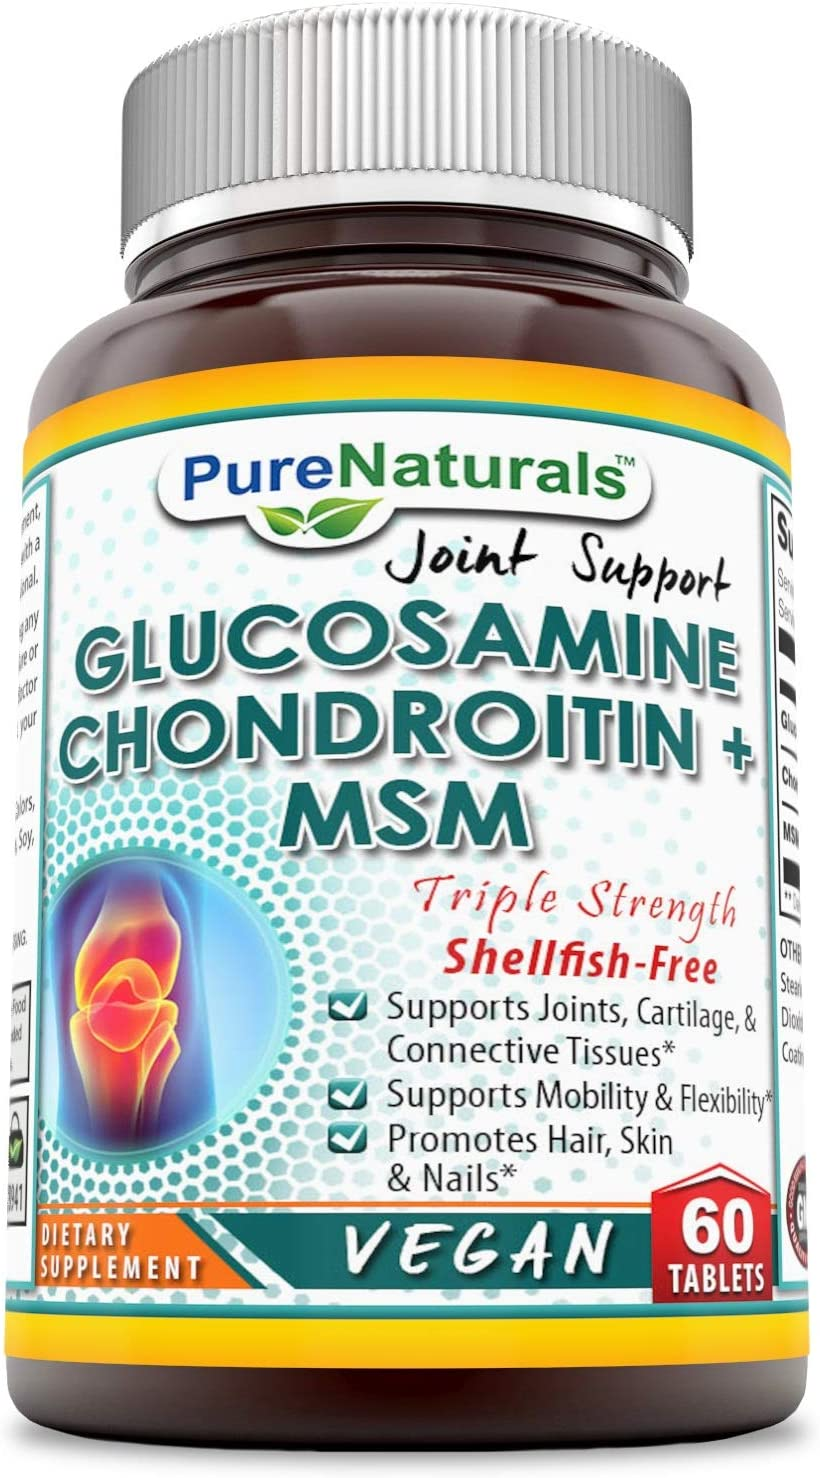 Pure Naturals Glucosamine Chondroitin & MSM Triple Strengh, Shellfish-Free, Supports Joints, Cartilage, Connective Tissues, Supports Mobiliaty & Flexibility, Promotes Hair, Skin & Nails 60 Tablets